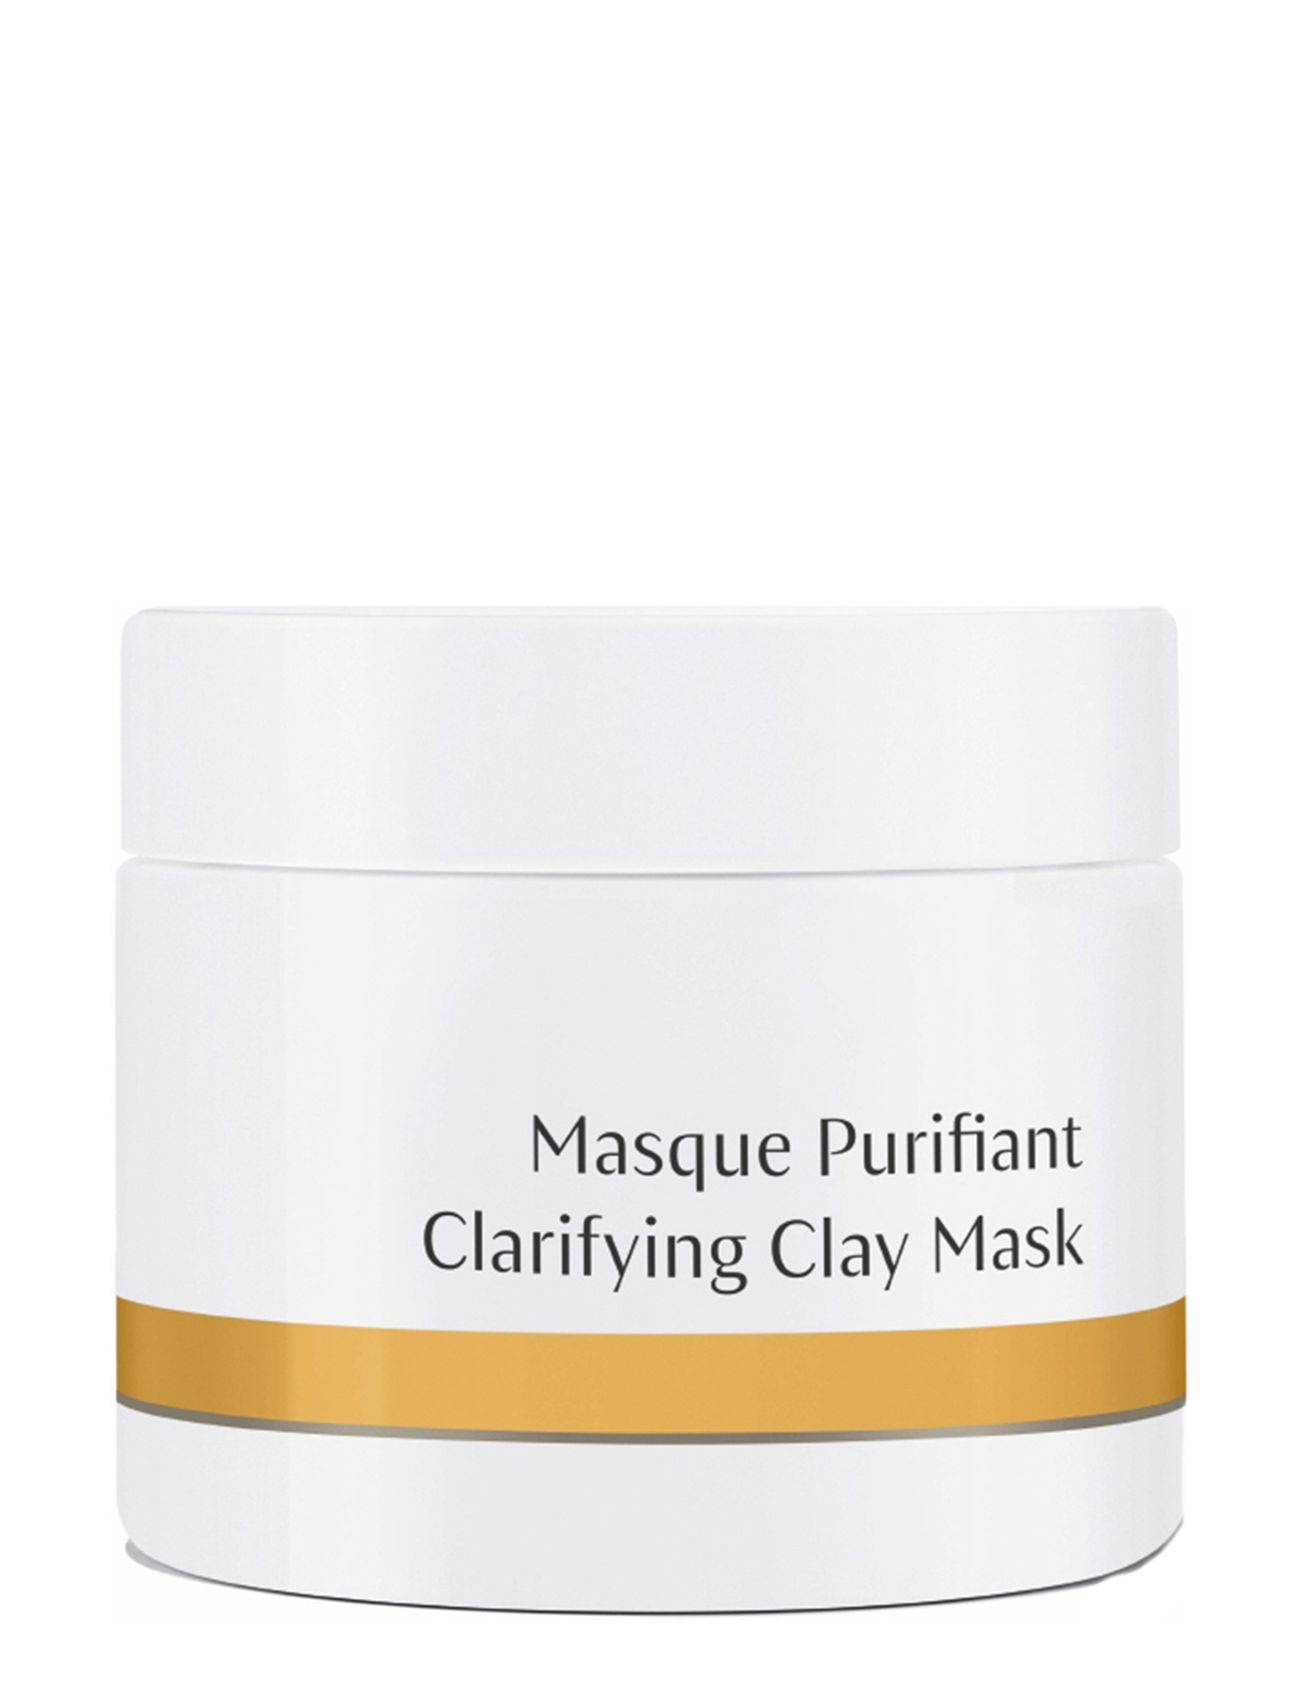 Dr. Hauschka Clarifying Clay Mask Pot